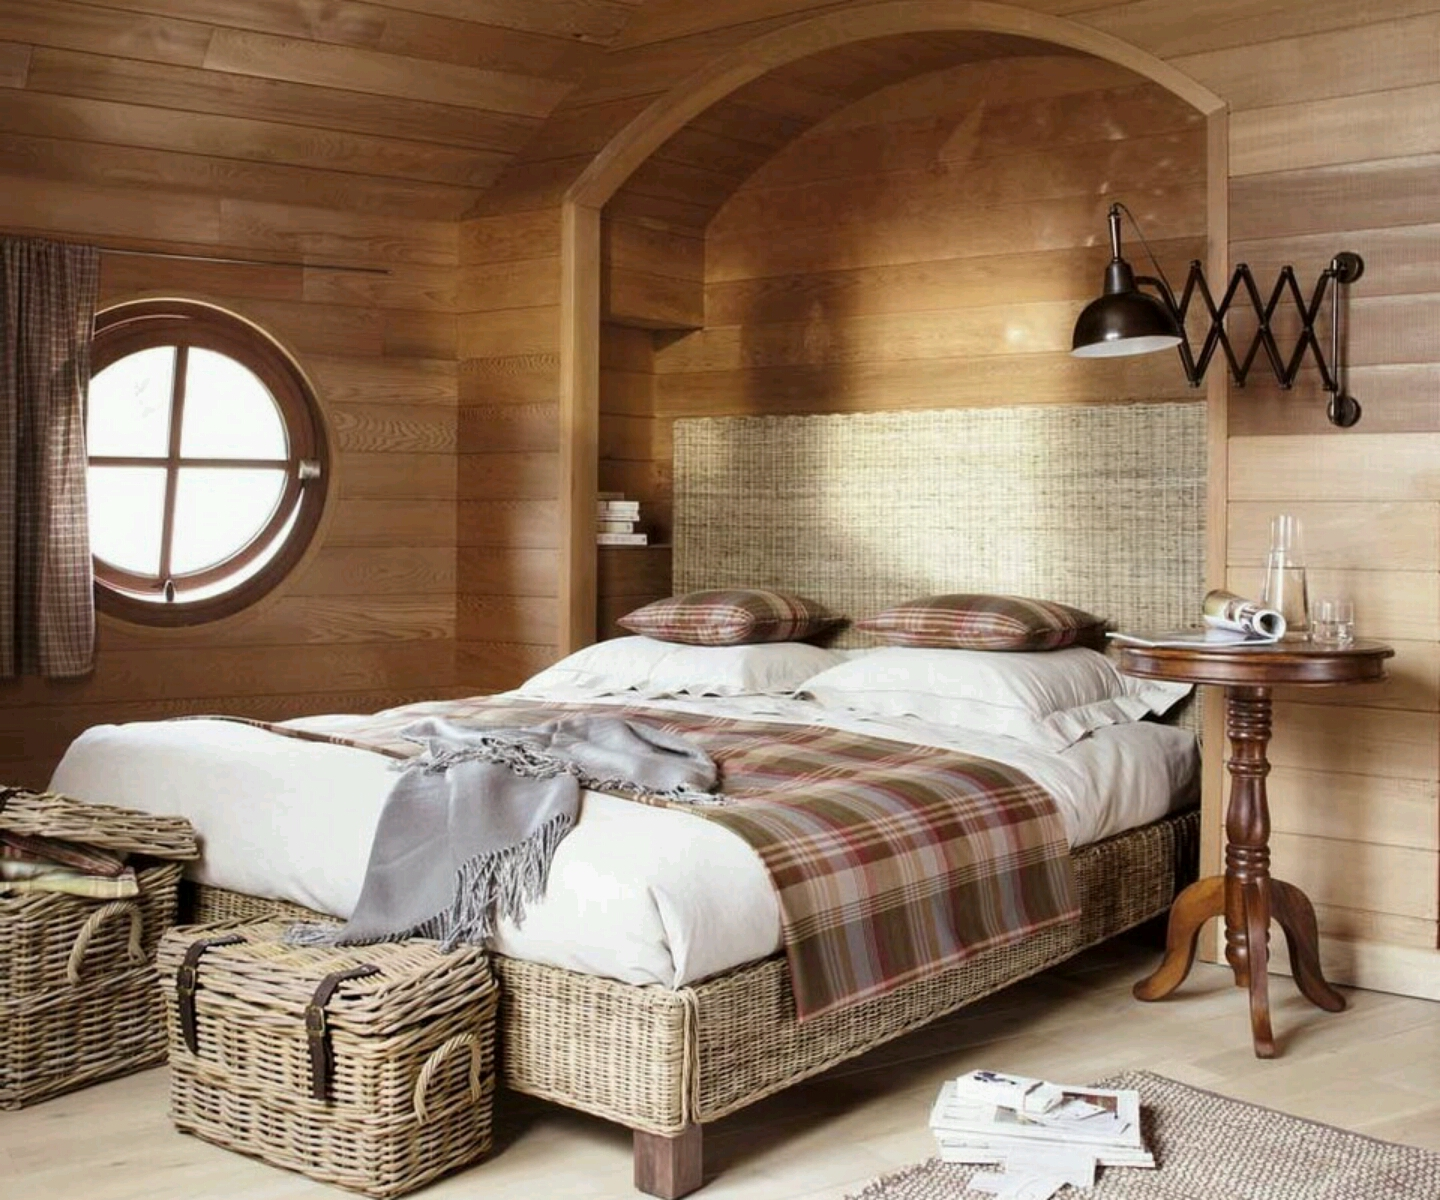 Beautiful bedroom interior designs photos for Beautiful room designs images